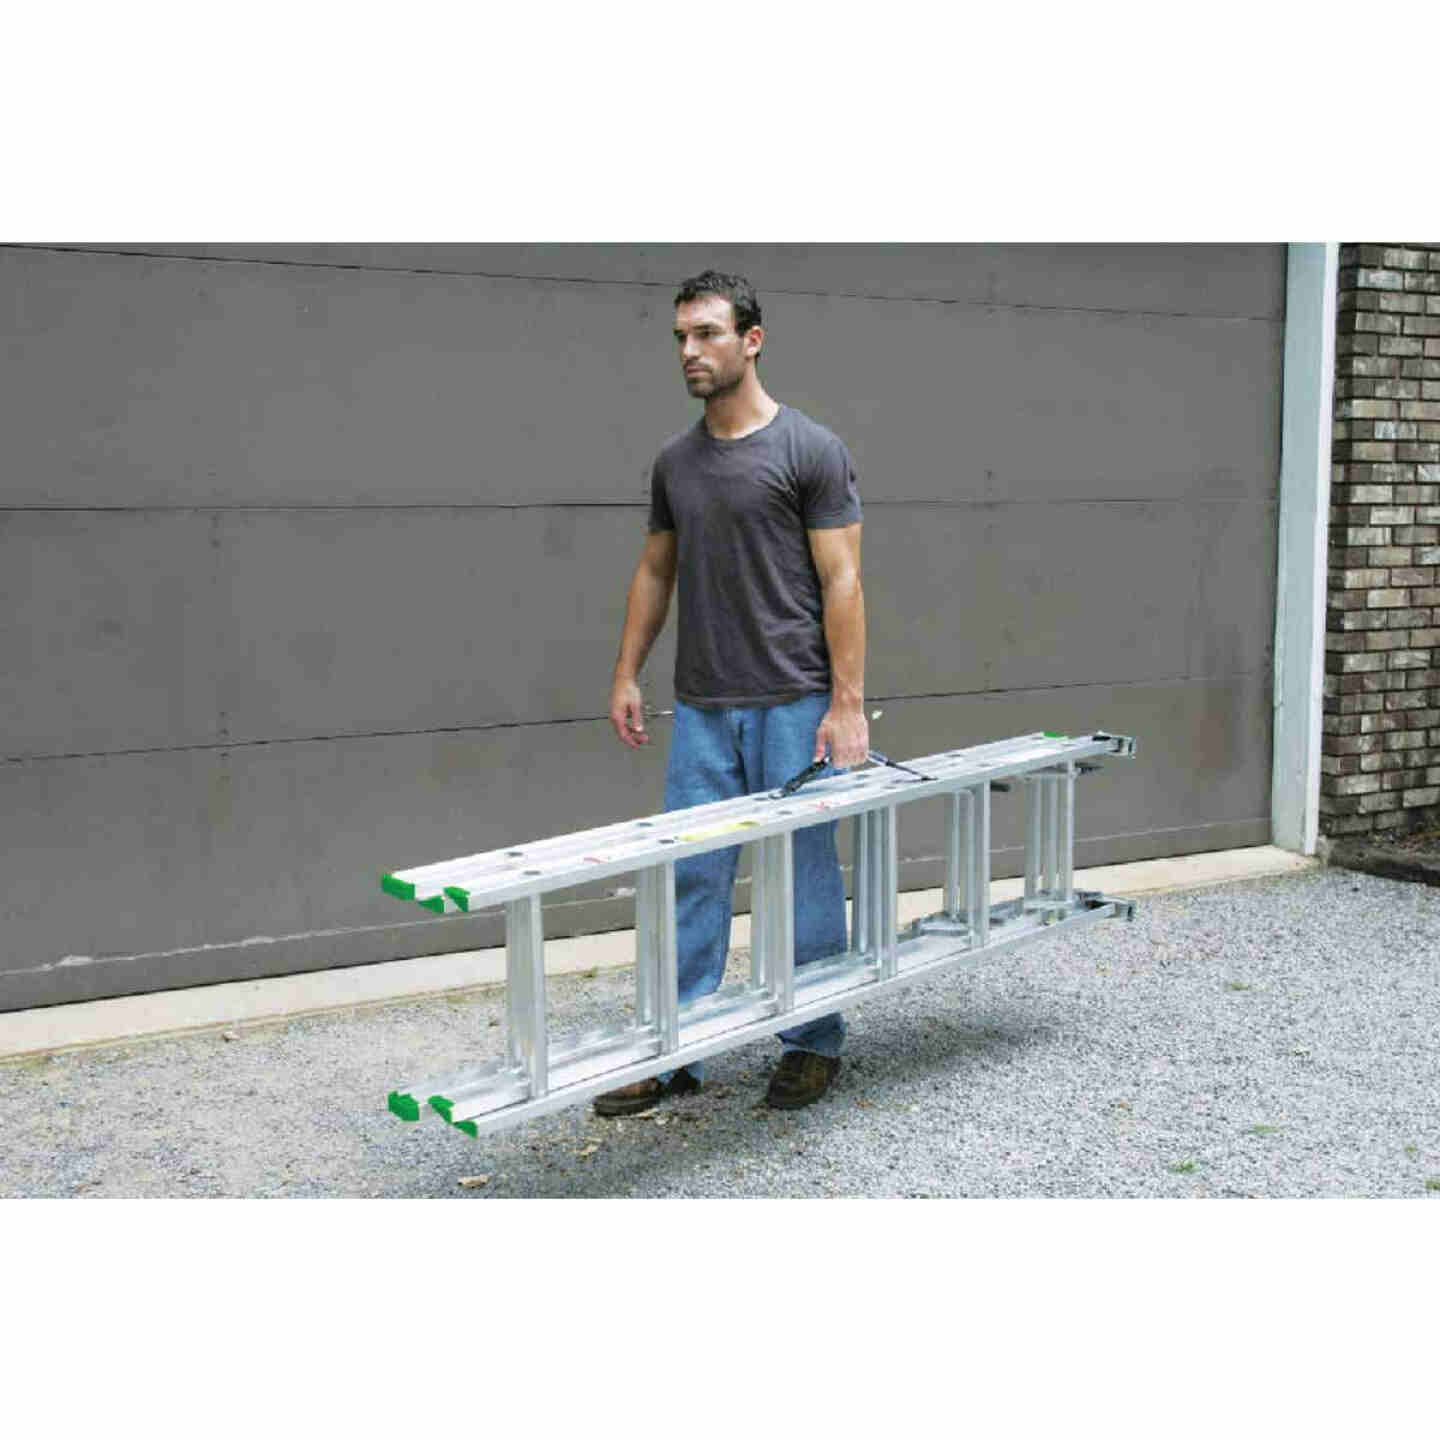 Werner 16 Ft. Compact Aluminum Extension Ladder with 225 Lb. Load Capacity Type II Duty Rating Image 4